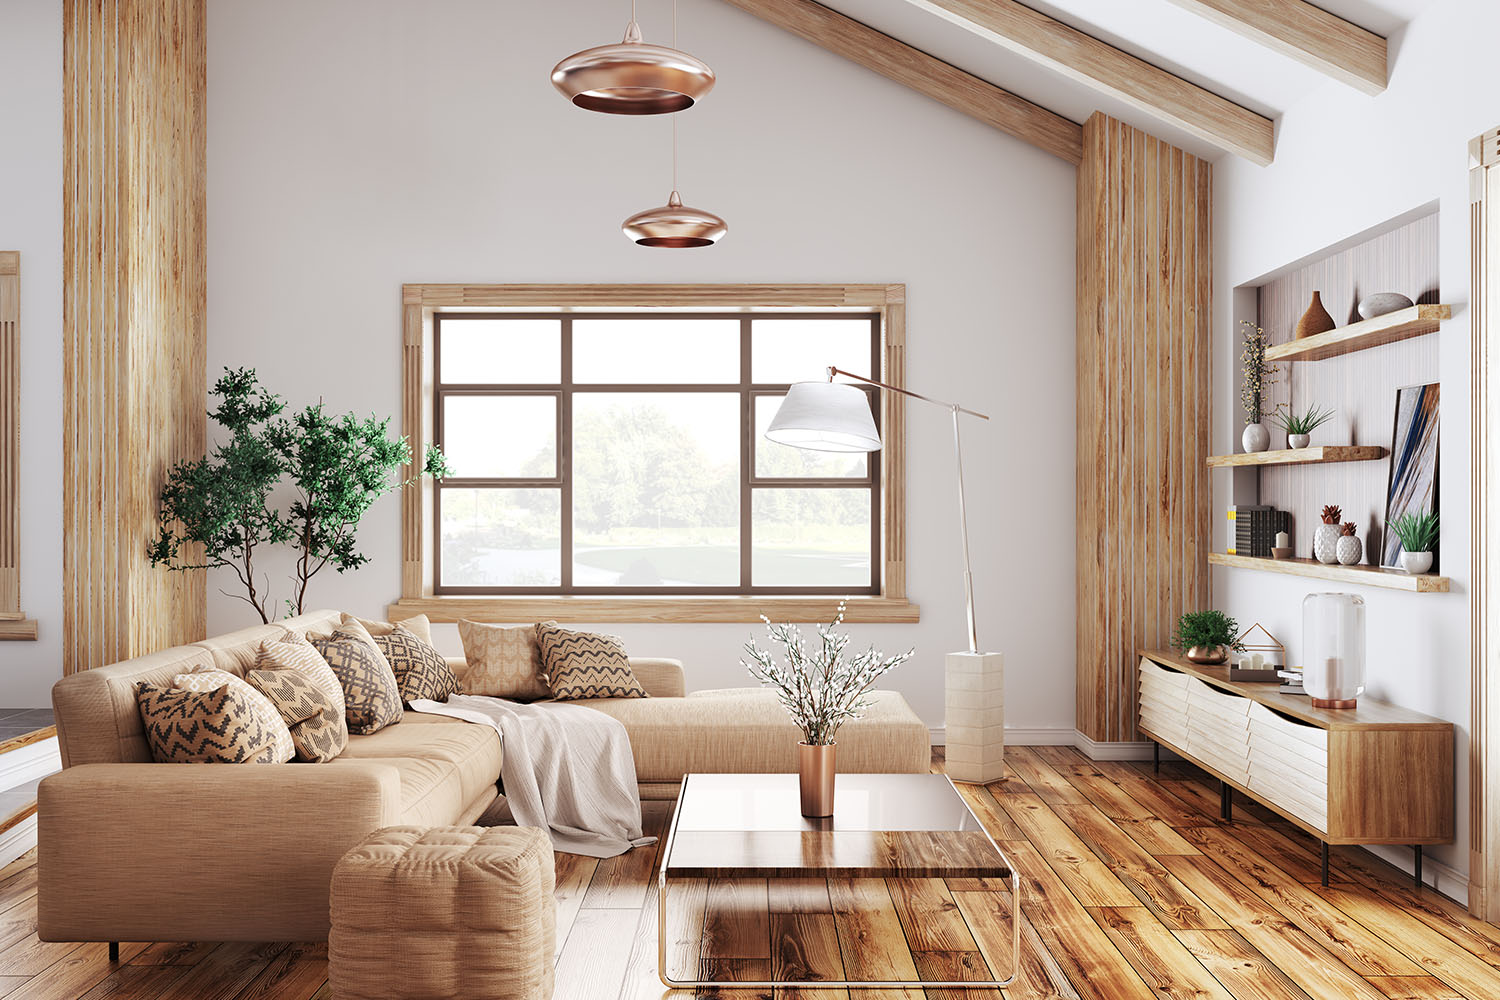 Home Design Trends: 5 New Home Design Trends We'll Be Seeing In 2020